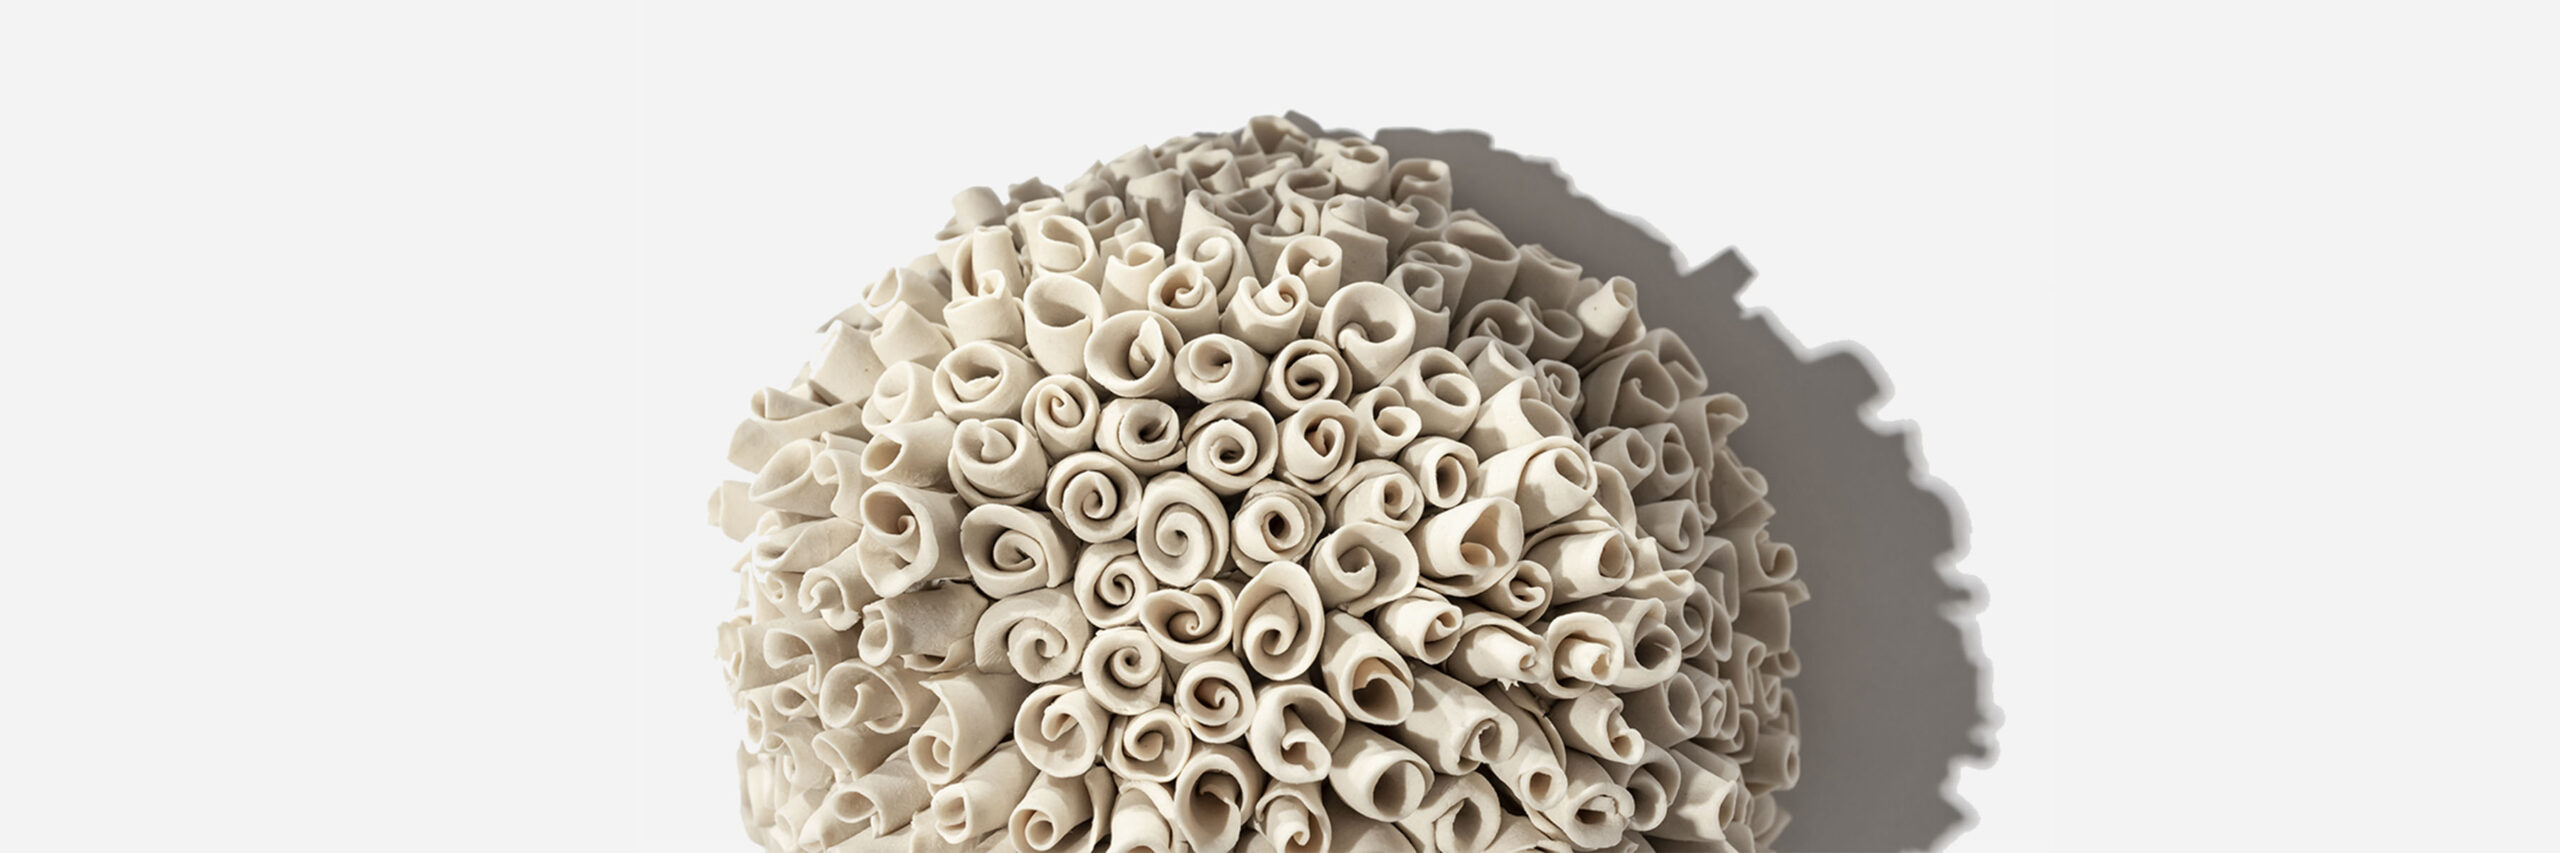 SCULPTURAL CLAY TILE MAKING 4-WEEK COURSE